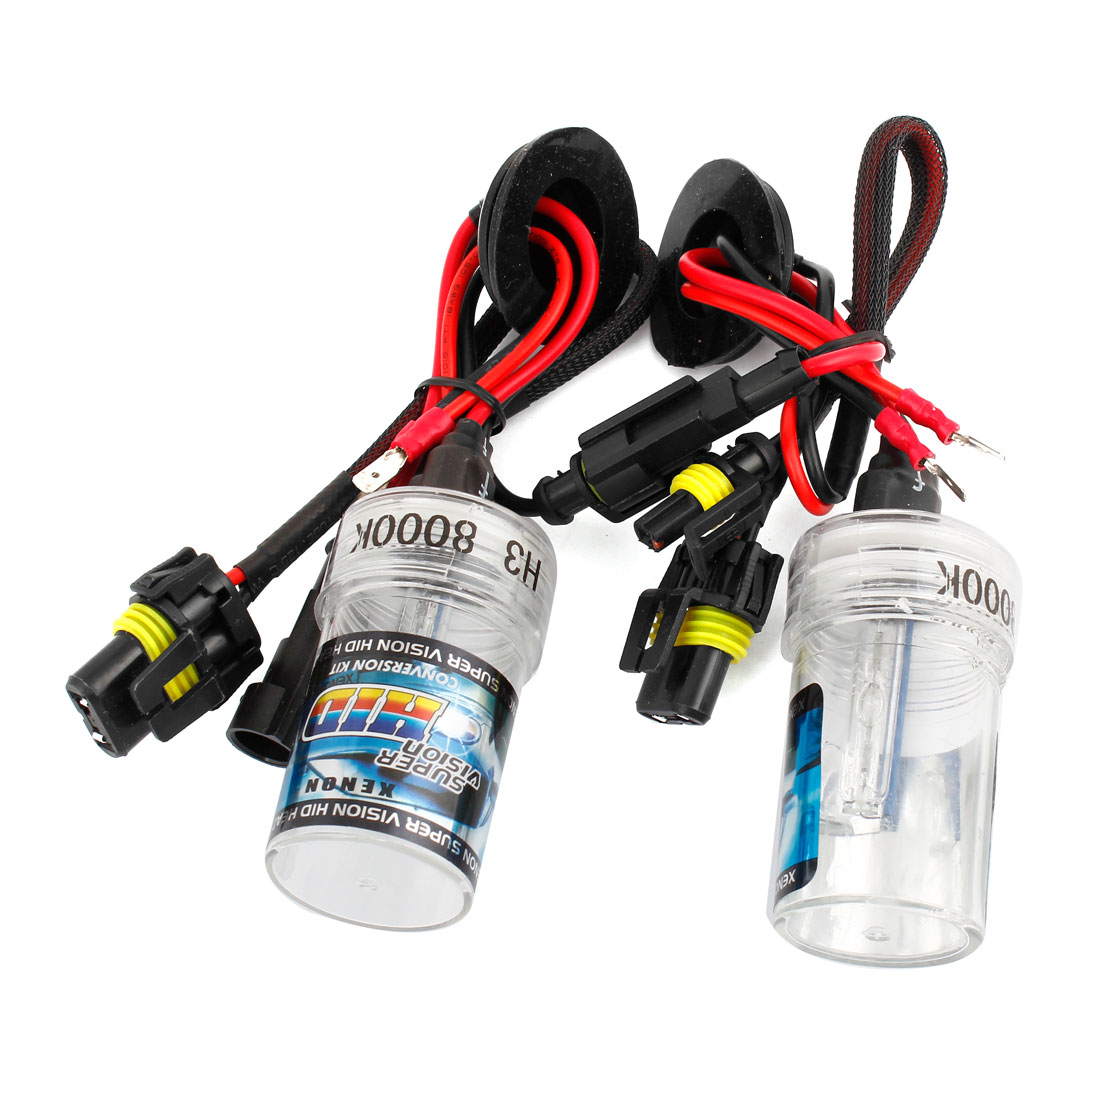 2pcs 8000K White H3 HID Xenon Bulb Lamp Light Headlamp Kit for Automotive Car